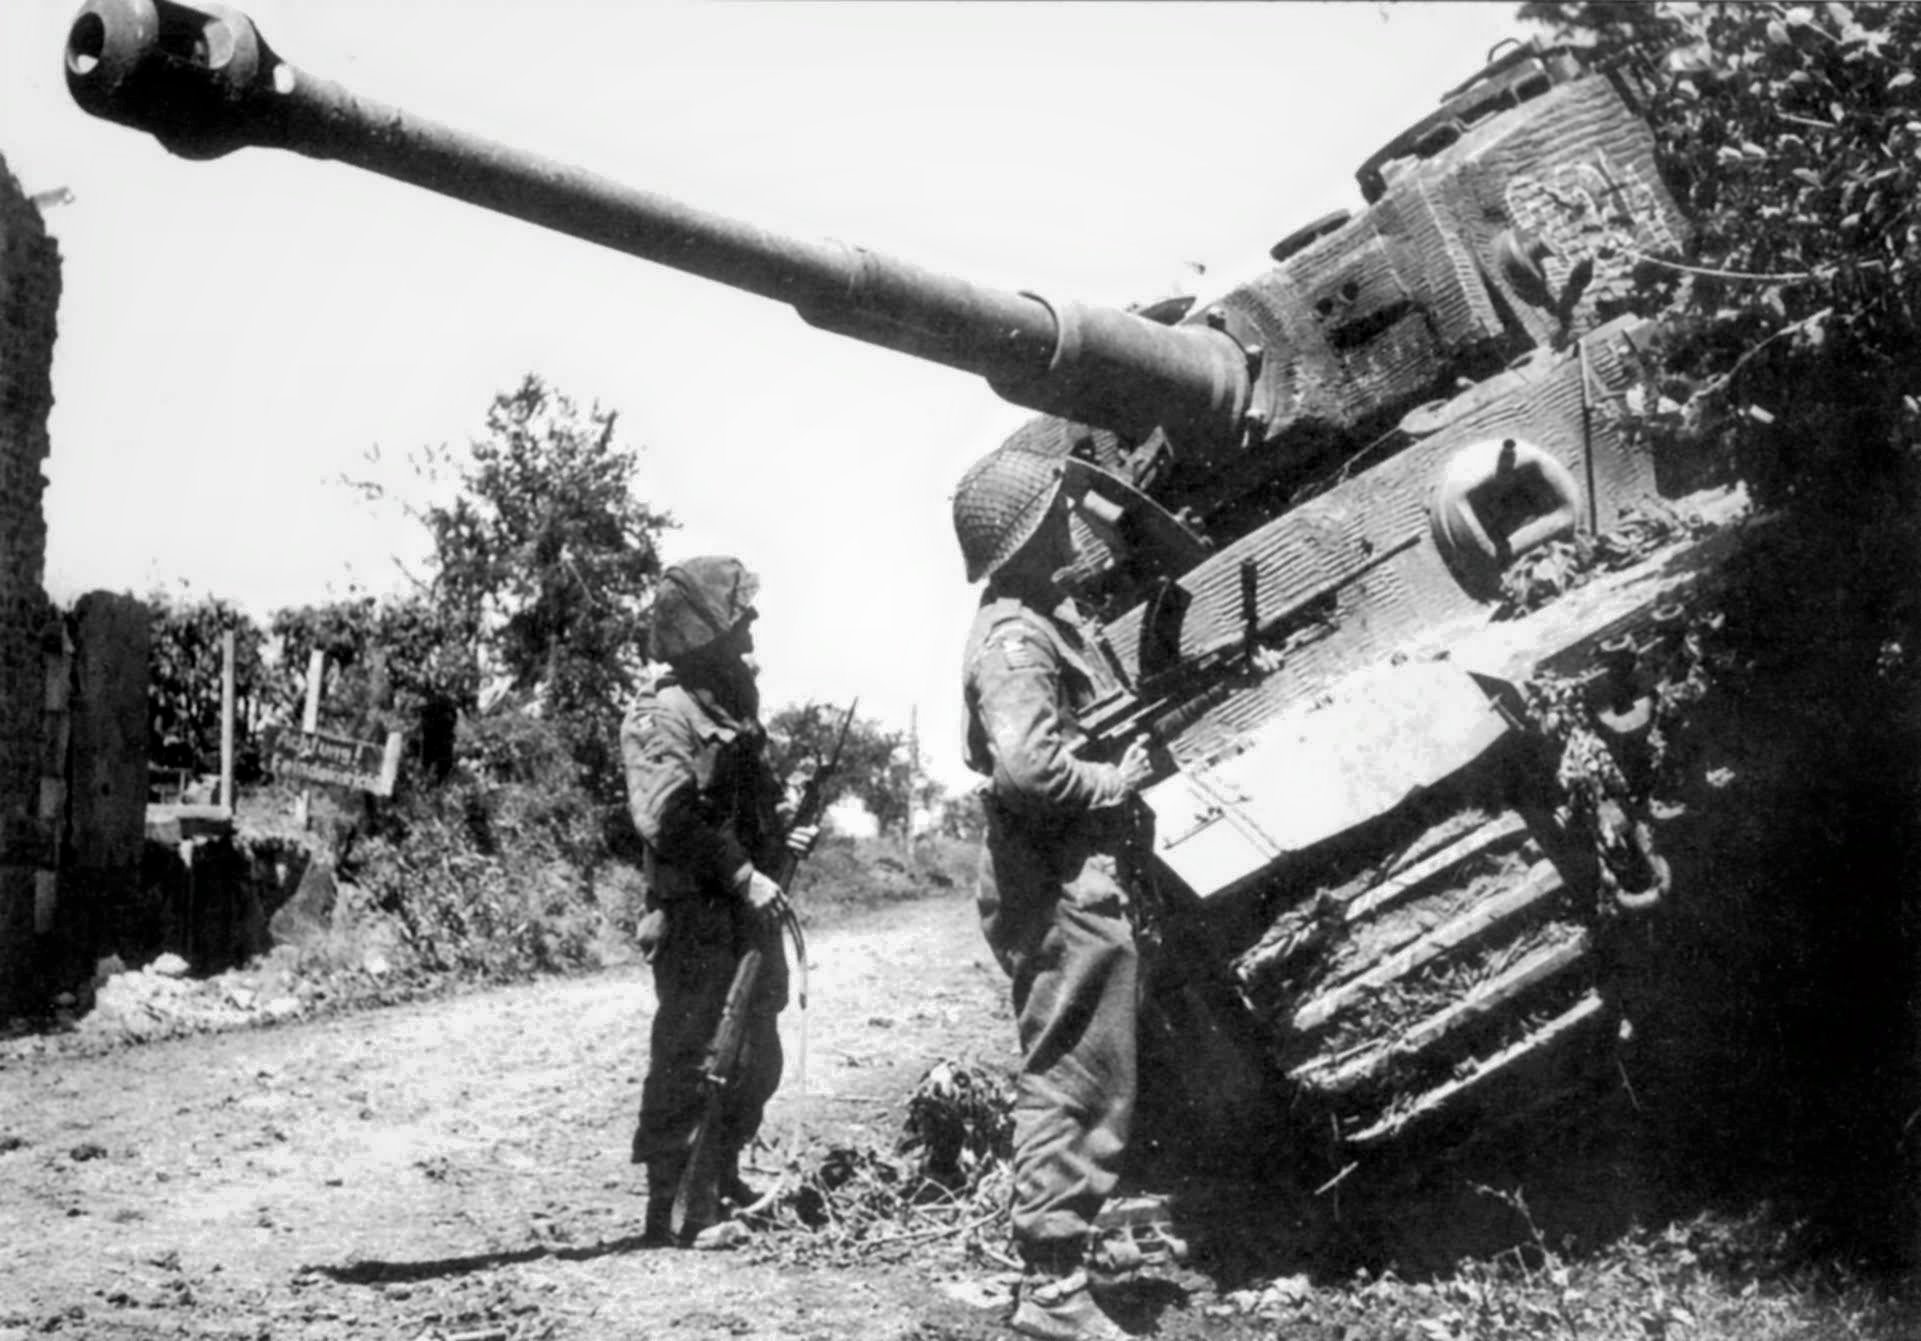 a review of the operation cobra in normandy Six weeks after the allied invasion of normandy, operation overlord showed  distressing signs of stalemate more than a million american,.